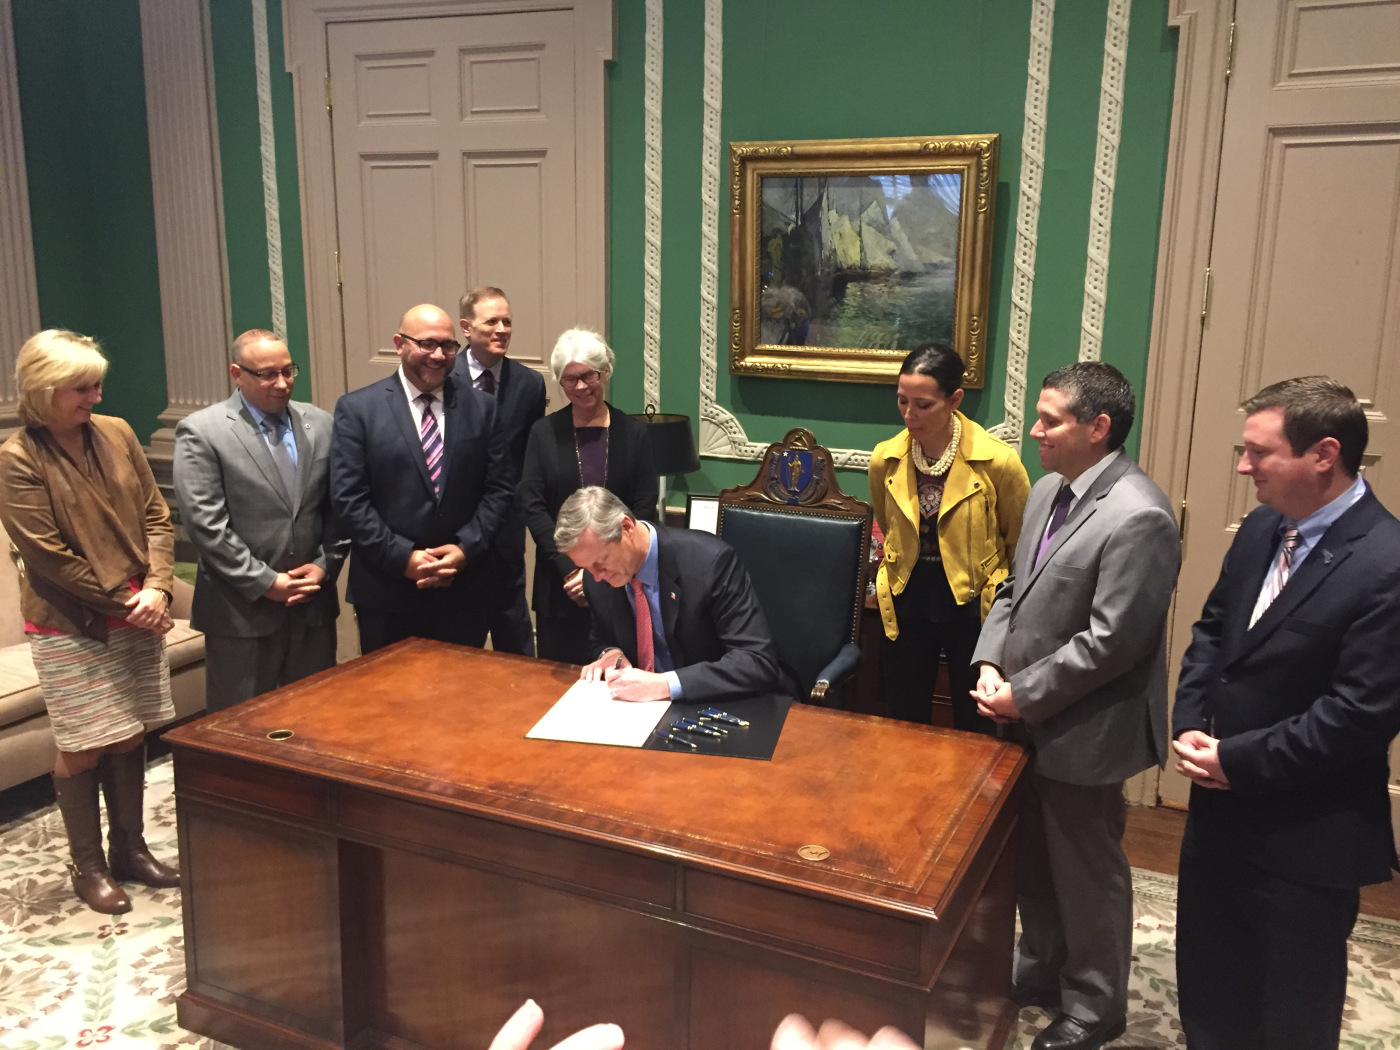 Gov. Baker signing the Language Opportunity for Our Kids (LOOK) bill into law in November 2017.  https://languageopportunity.org/look-act/